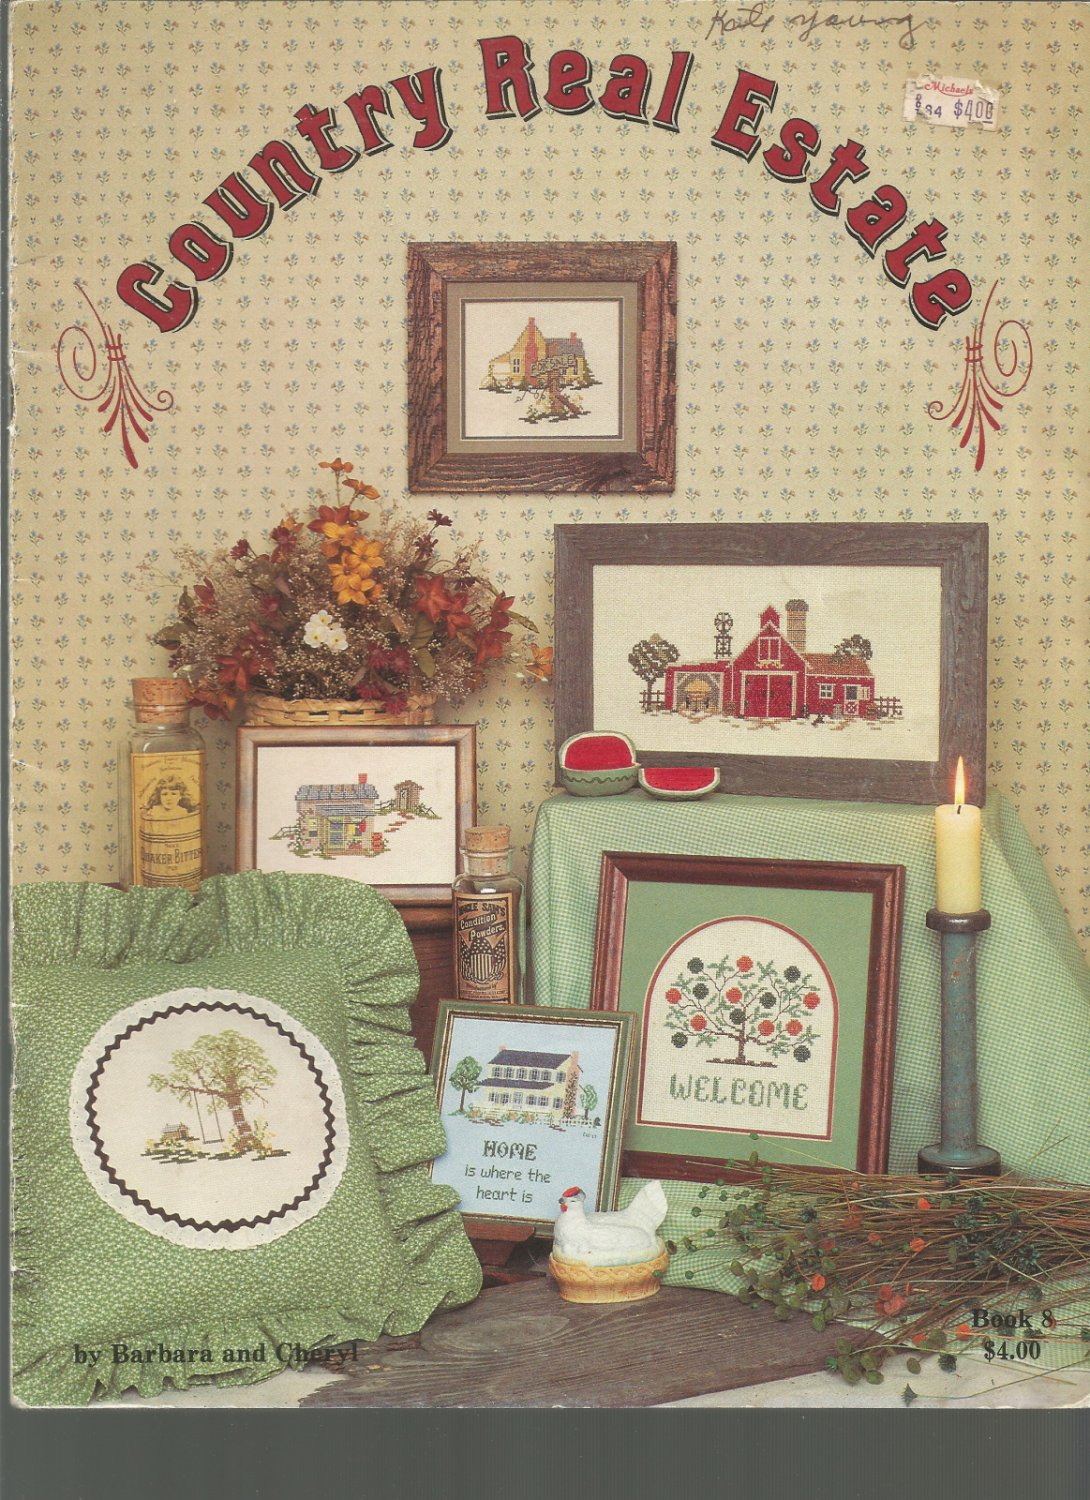 Country Real Estate leaflet Book 8 by Barbara and Cheryl